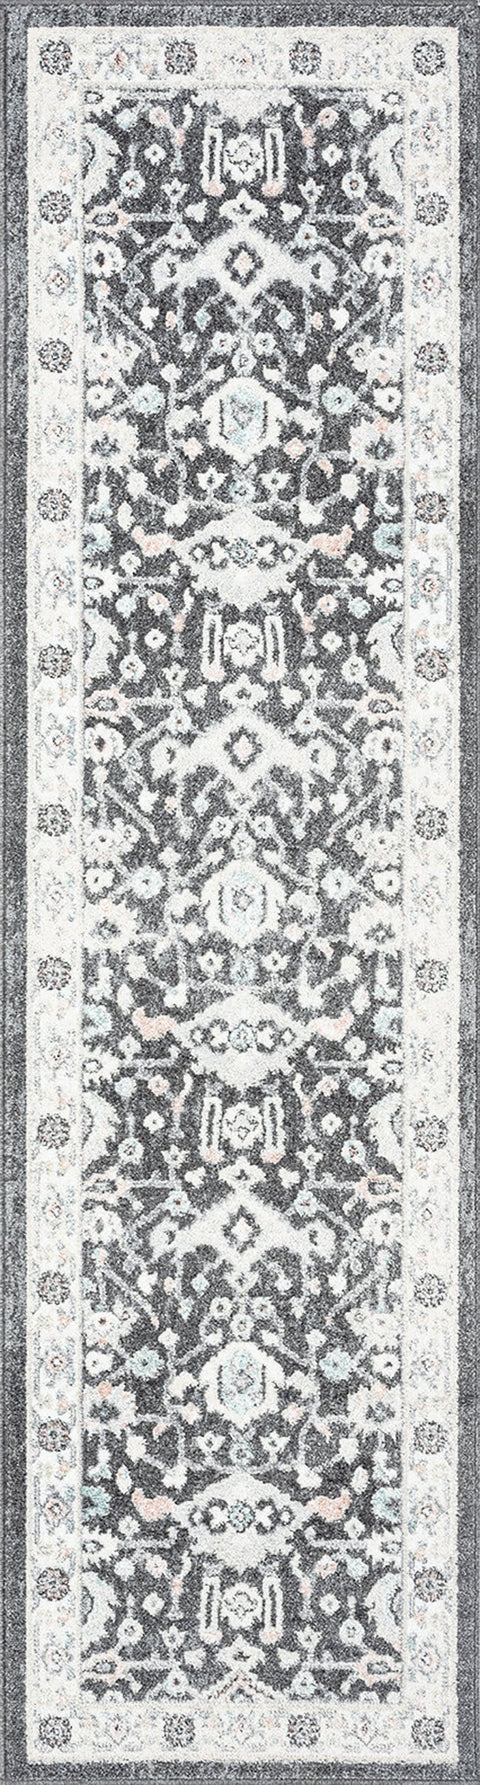 Vada Cream Ivory and Grey Traditional Medallion Floral Runner Rug